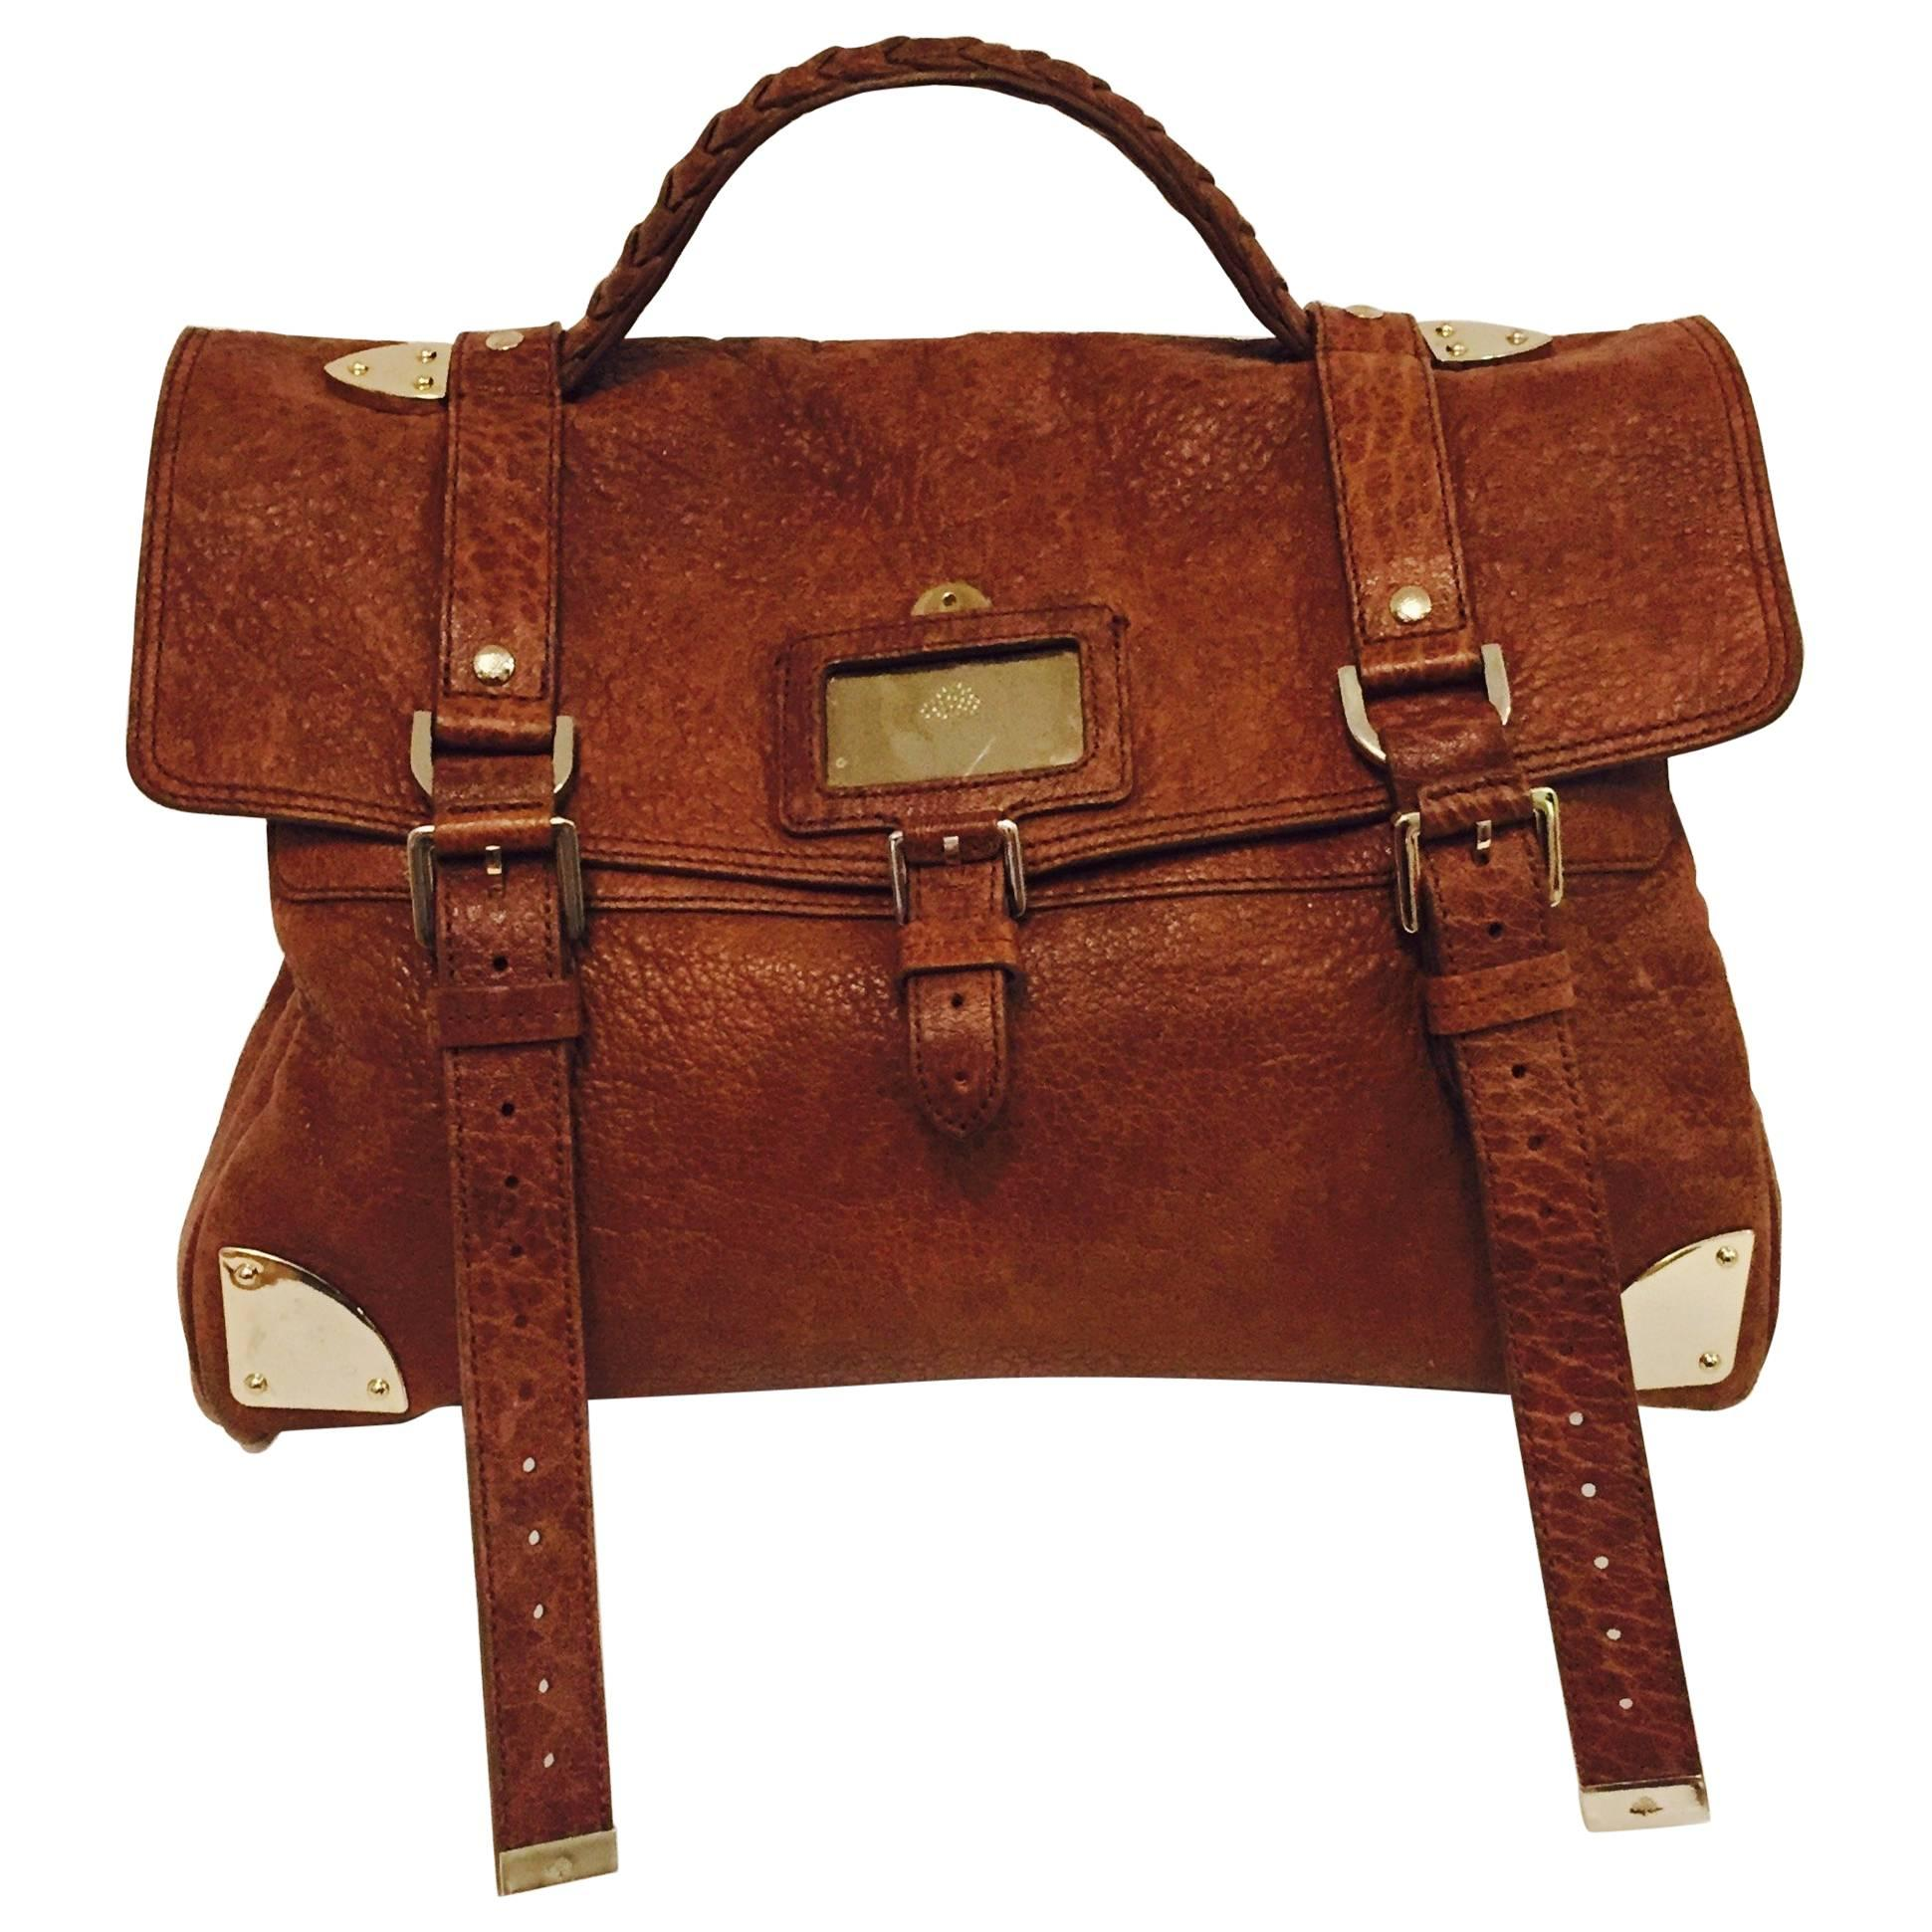 0db680e027 ... australia memorable mulberry textured leather messenger bag for sale  532a2 b2350